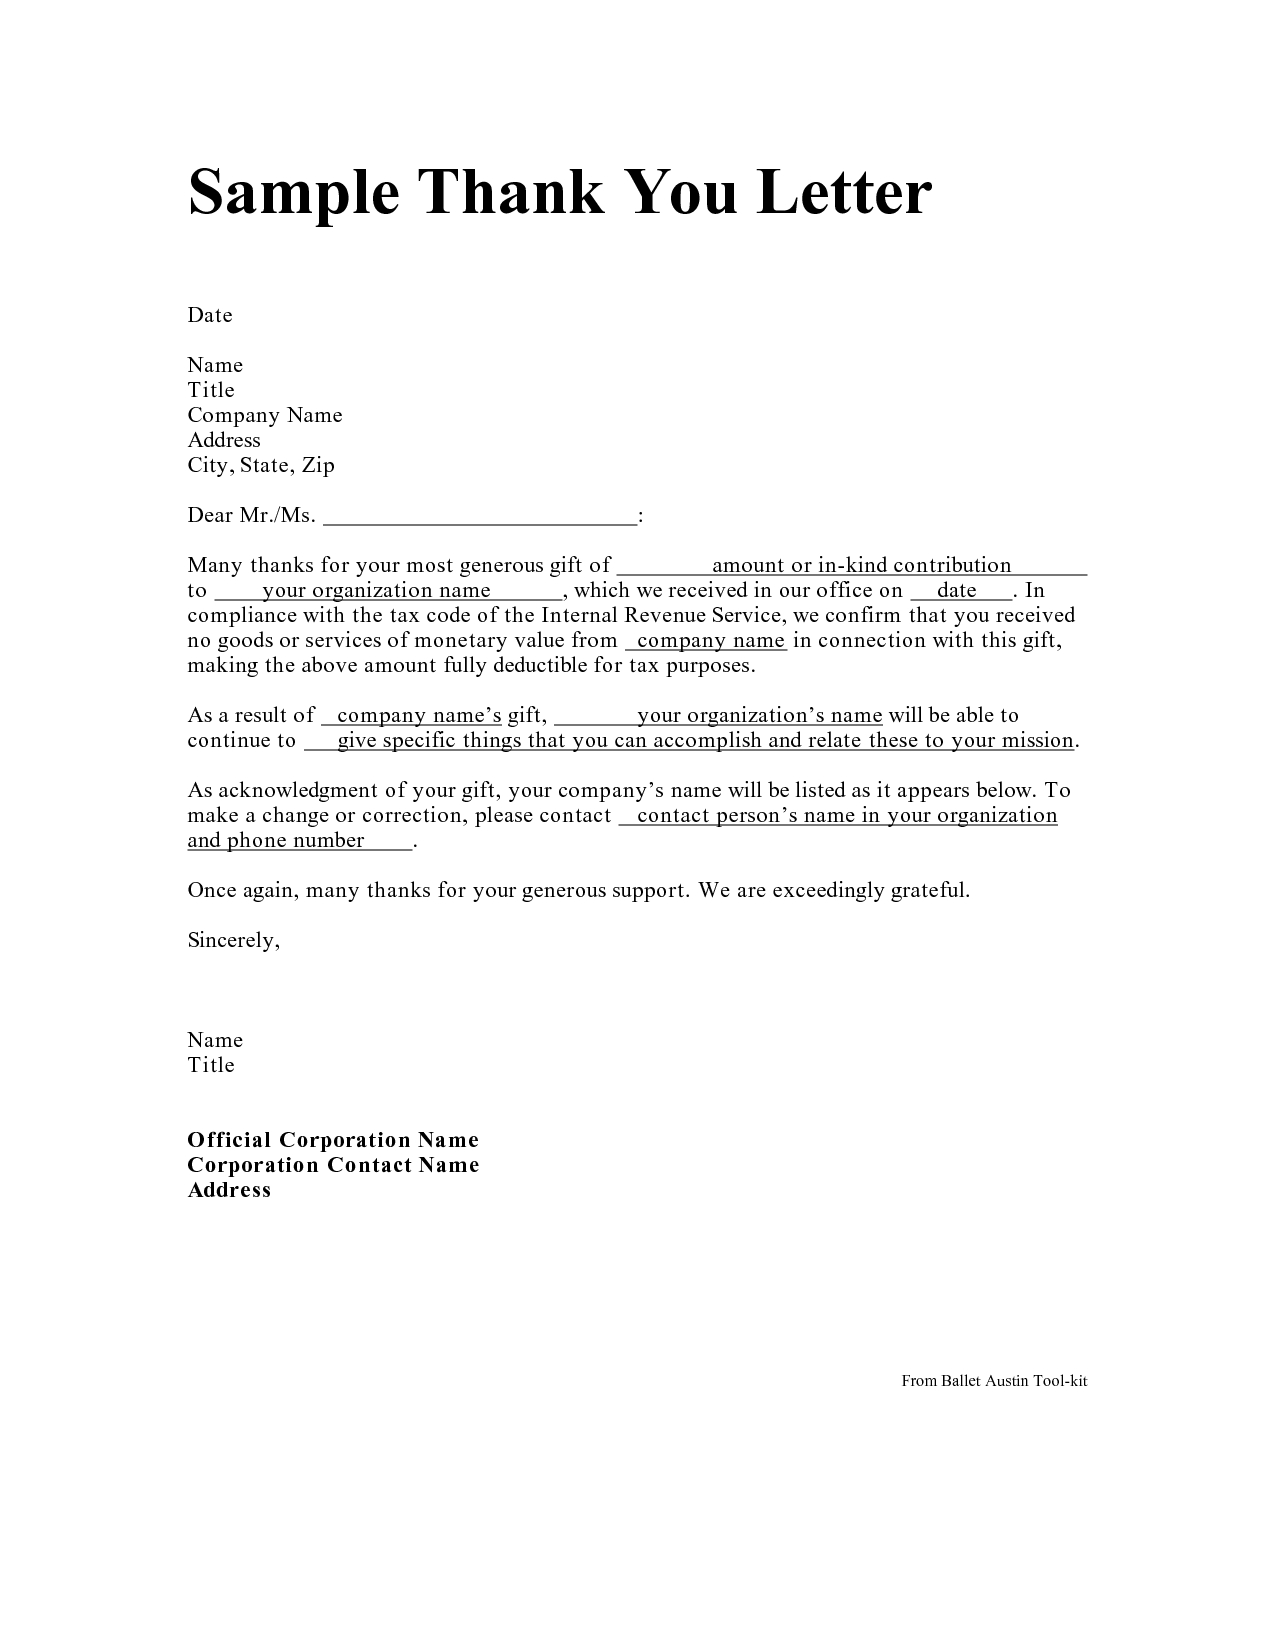 Therapist Marketing Letter Template - Personal Thank You Letter Personal Thank You Letter Samples